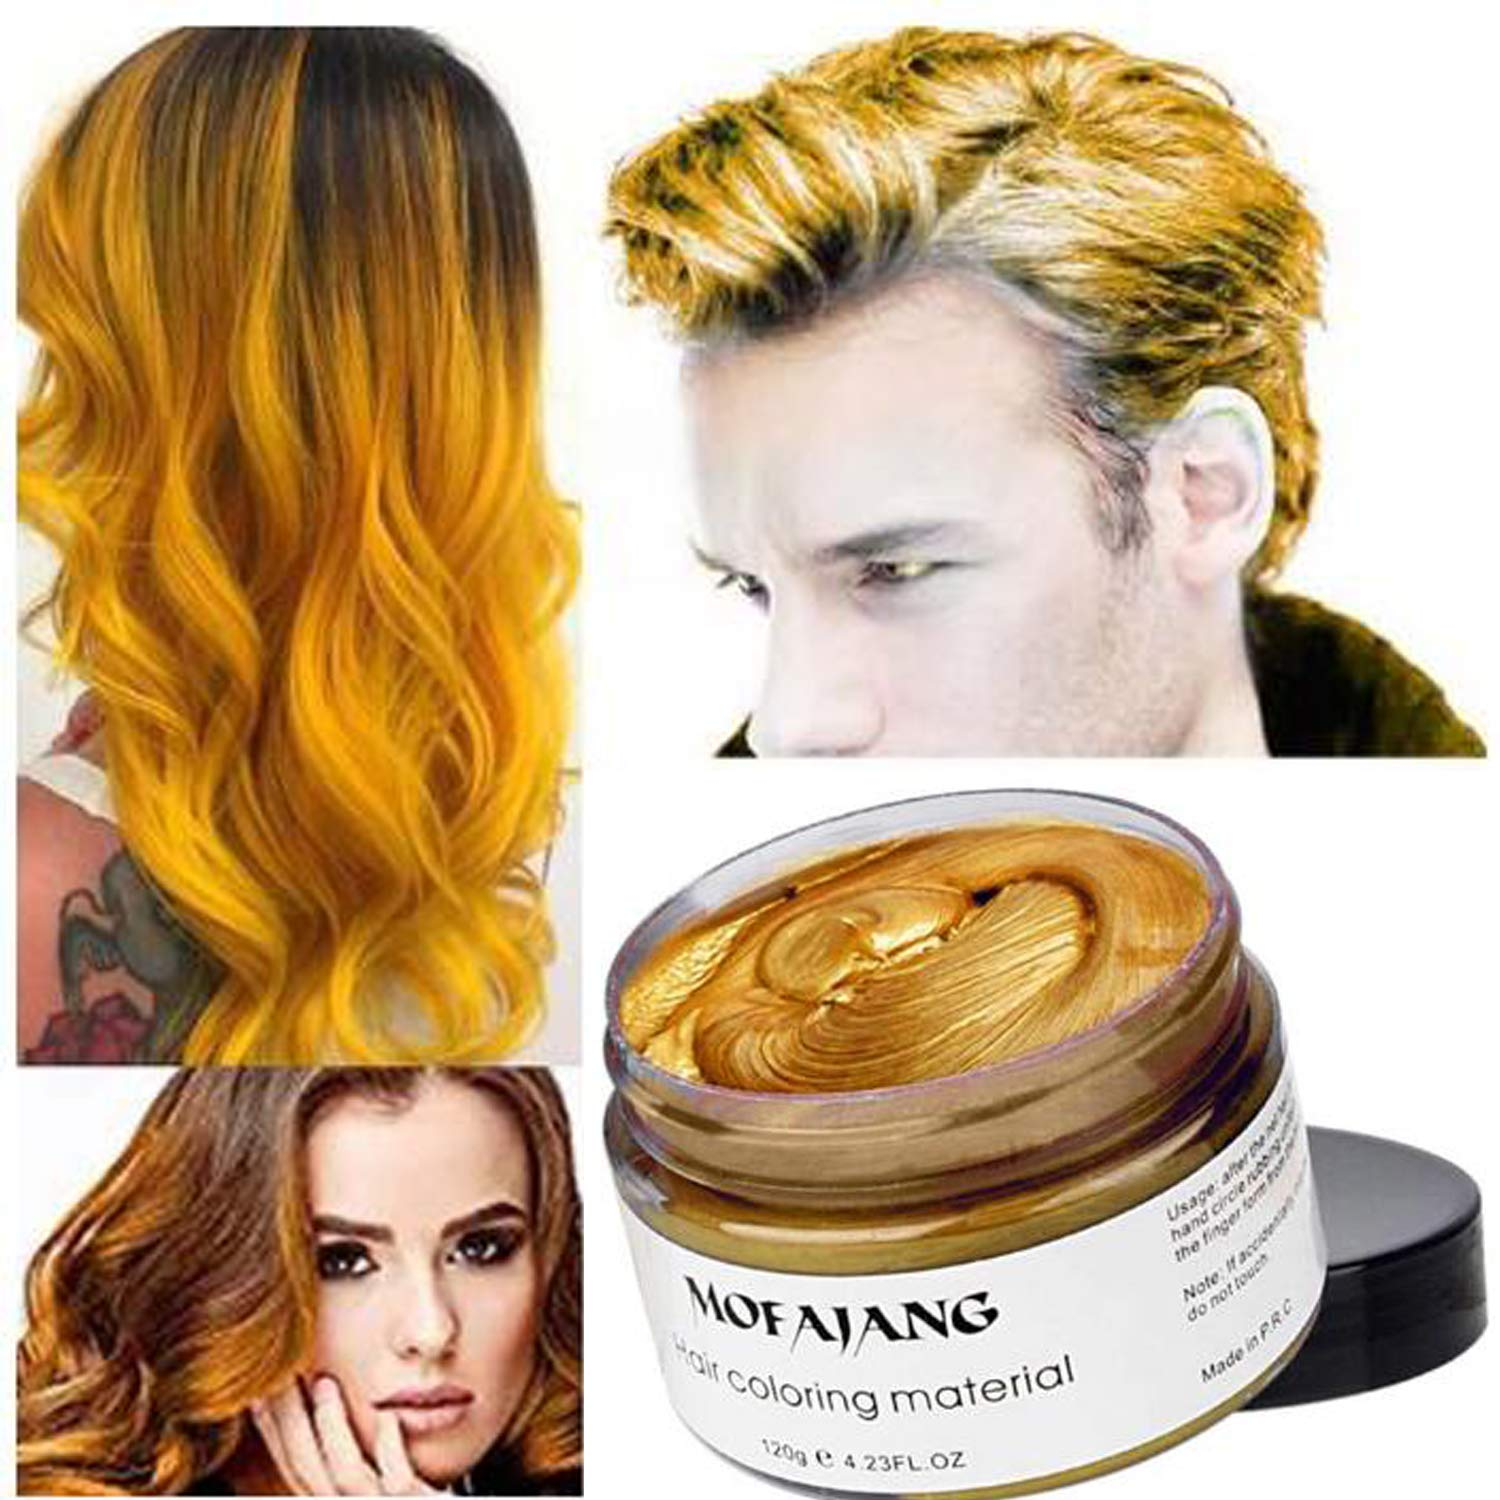 AZONBOX Hair Dye and Hair Coloring Temporary Hair Dye Wax, Instant Hairstyle Natural Hair Coloring Wax Material Disposable Hair Styling Clays Ash for Cosplay,Party,Masquerade, Halloween.etc by AZONBOX